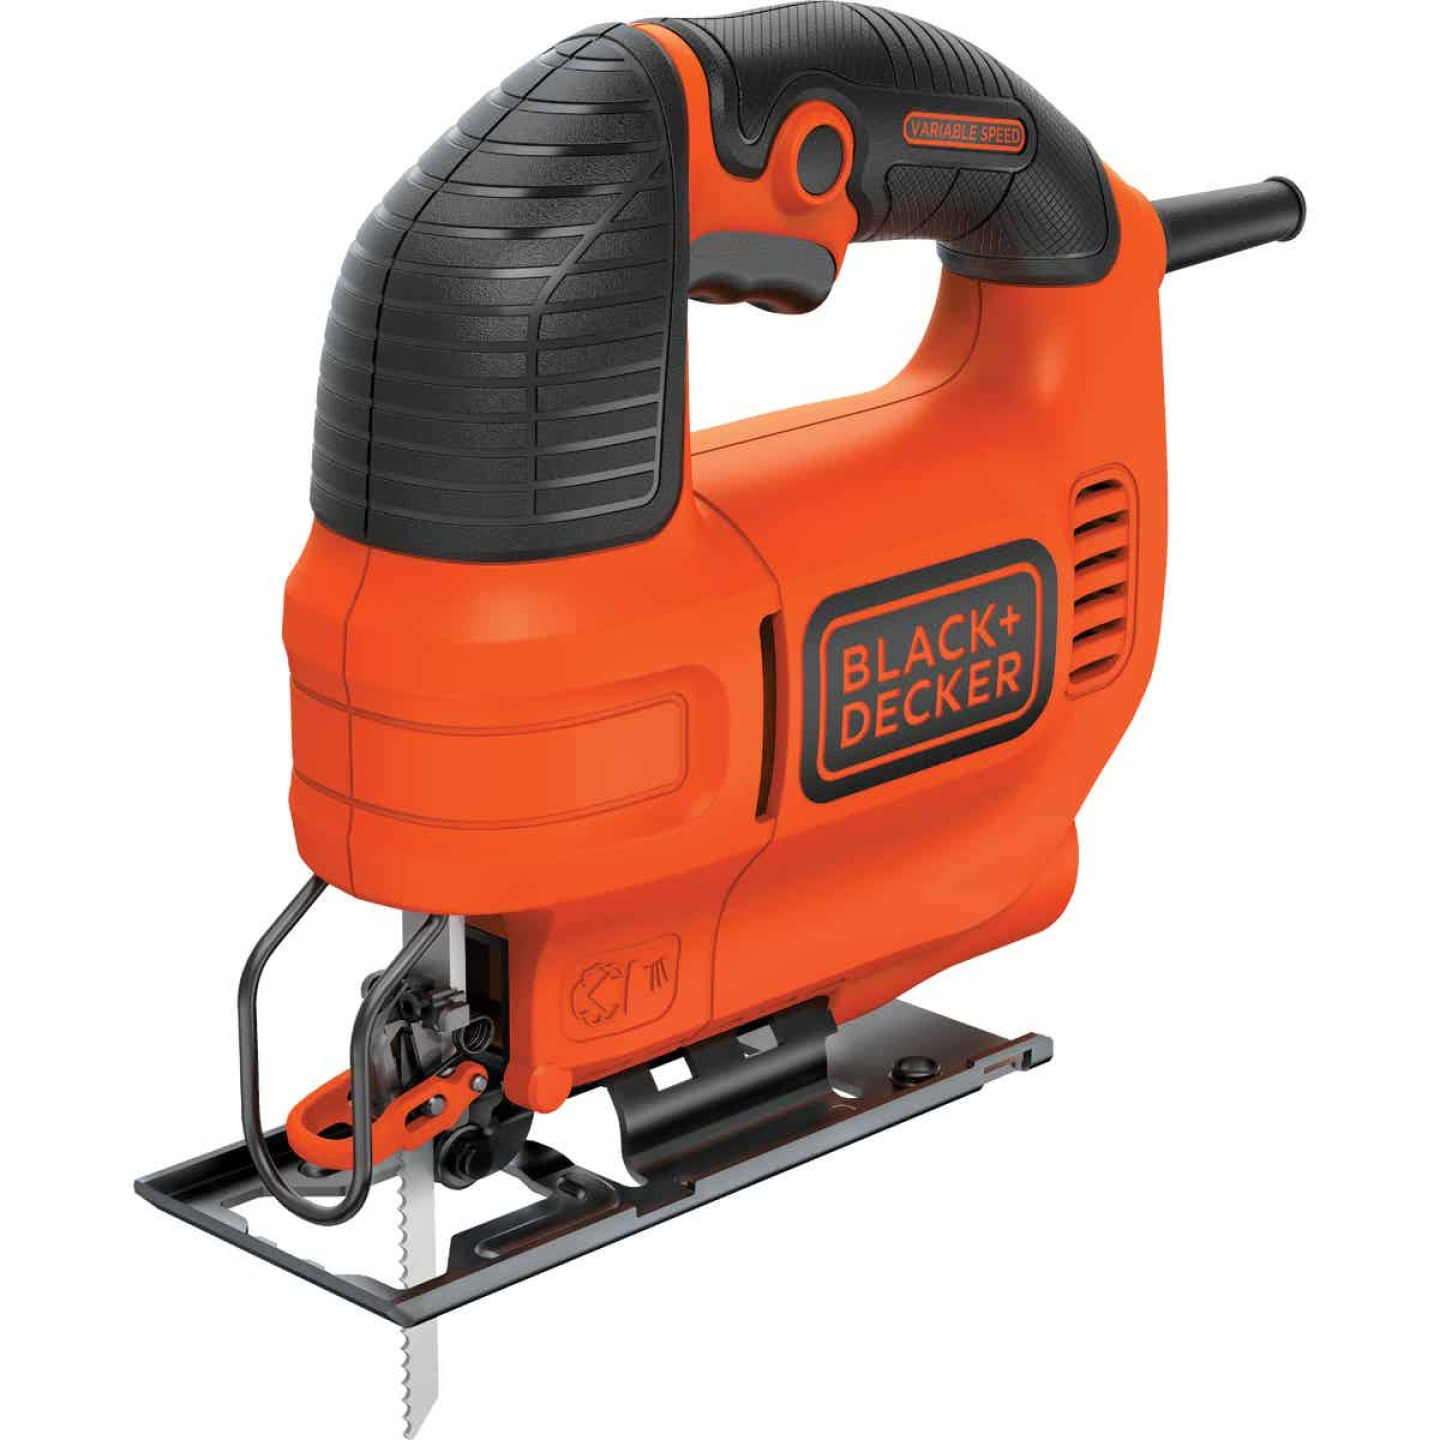 Black & Decker 4.5A 0 to 3000 SPM Jig Saw Image 1